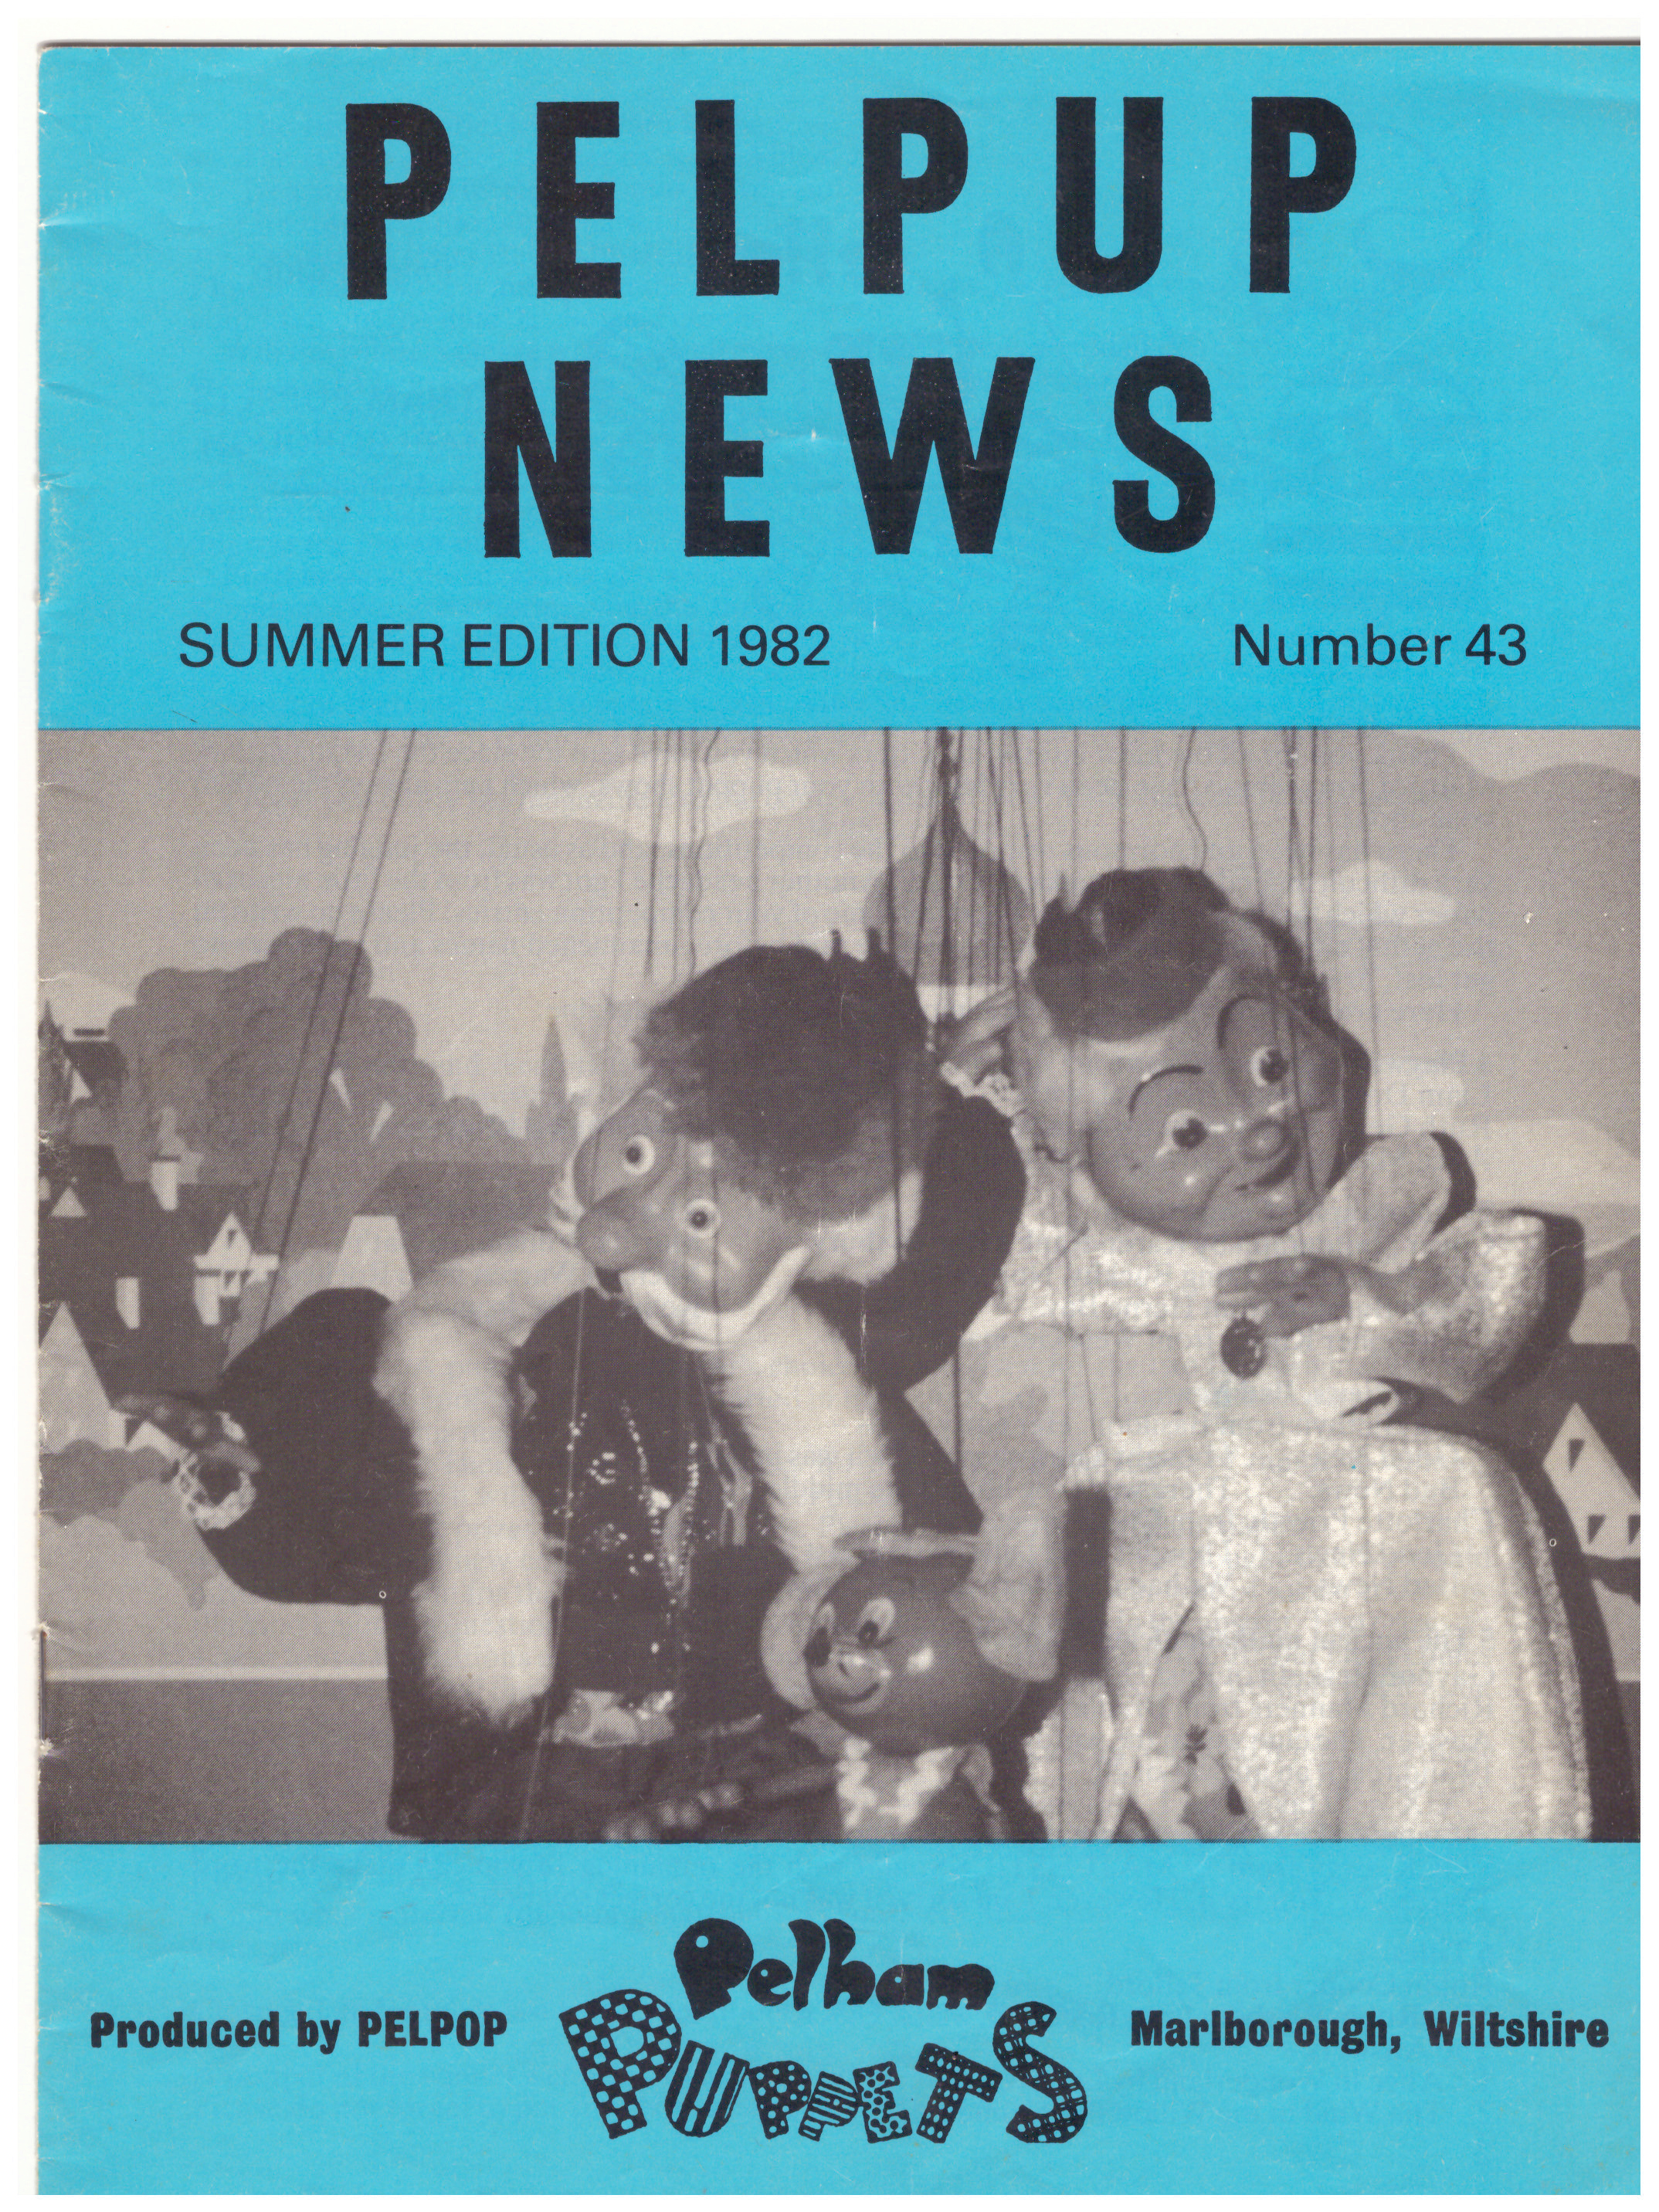 Summer Edition 1982 - Number 43